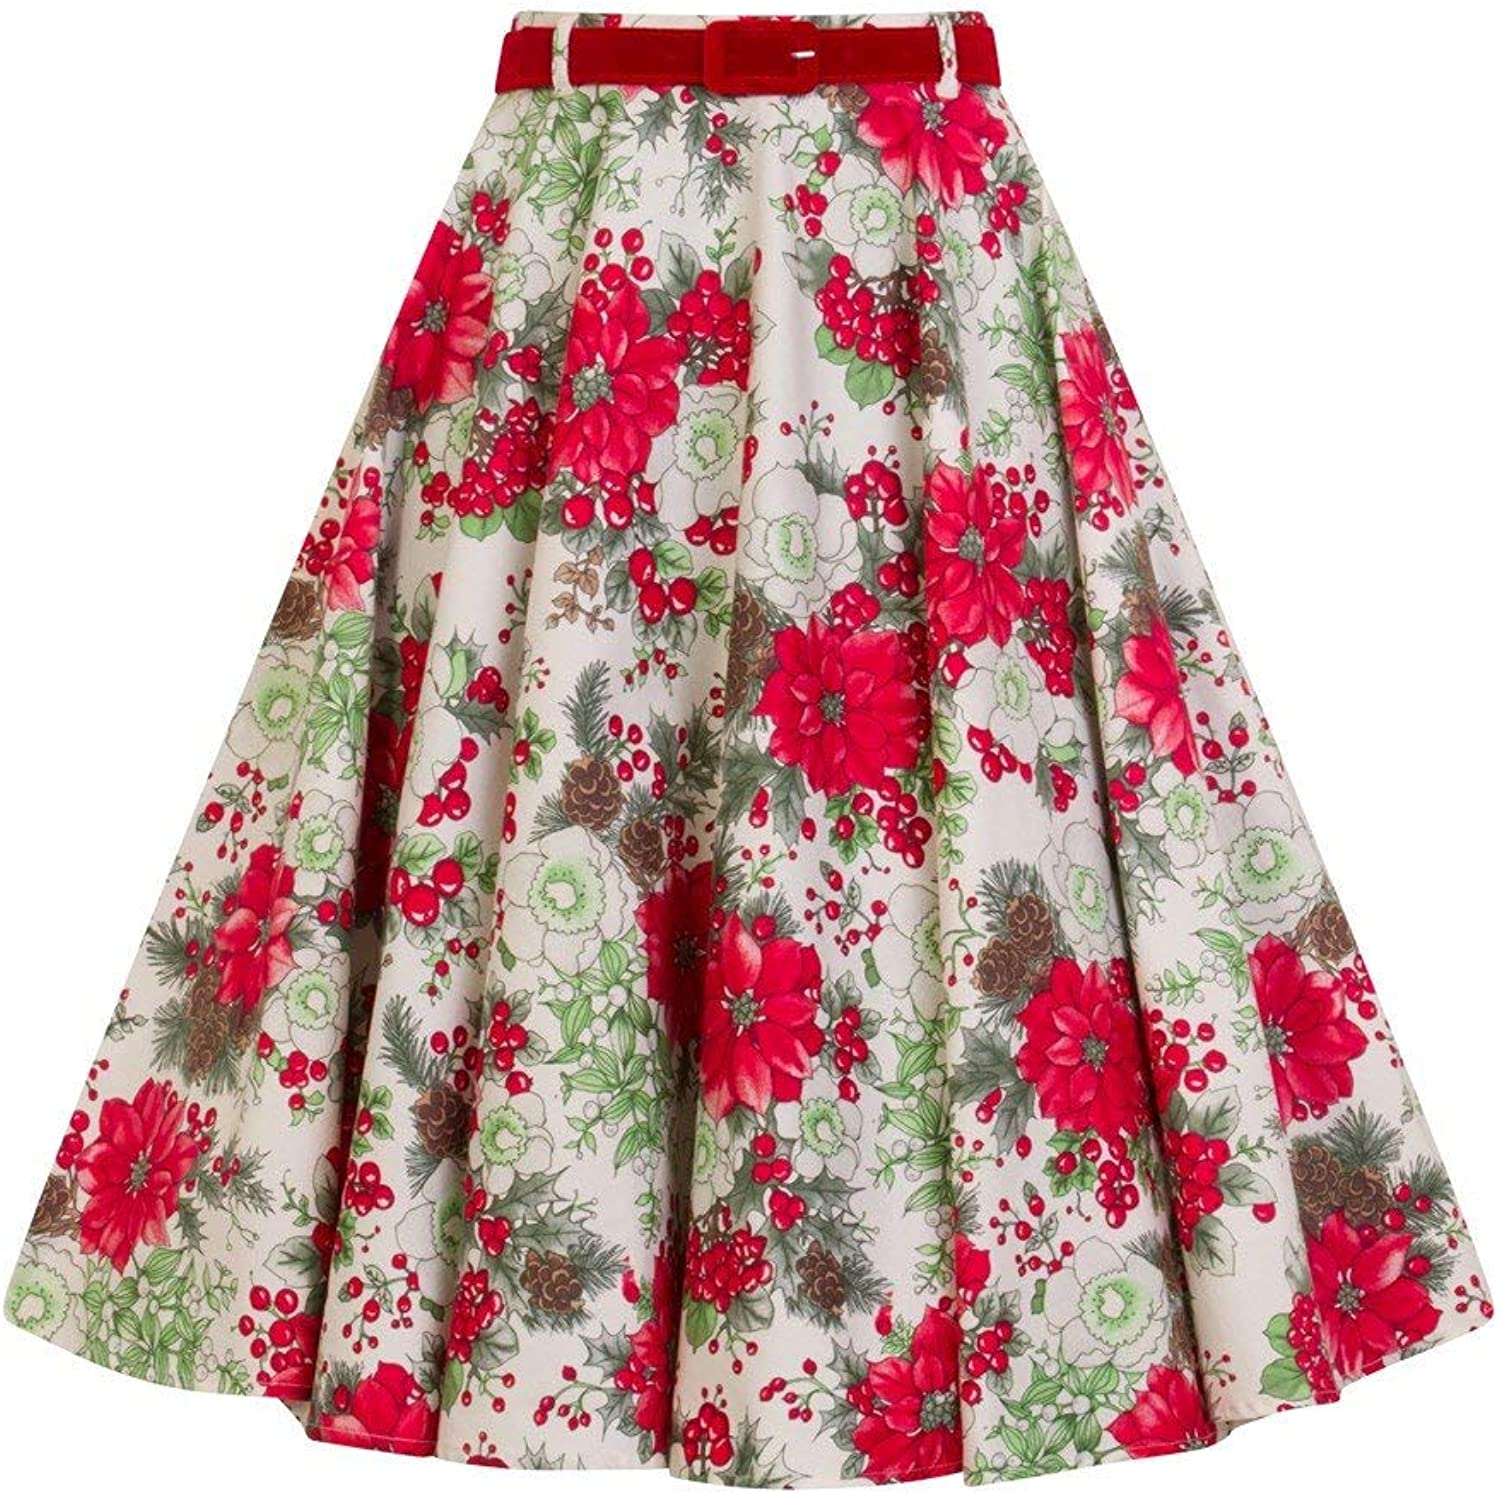 HELL BUNNY JENNIE IVORY SKIRT winter RED FLORAL HOLLY xmas CHRISTMAS 50s XS-4XL